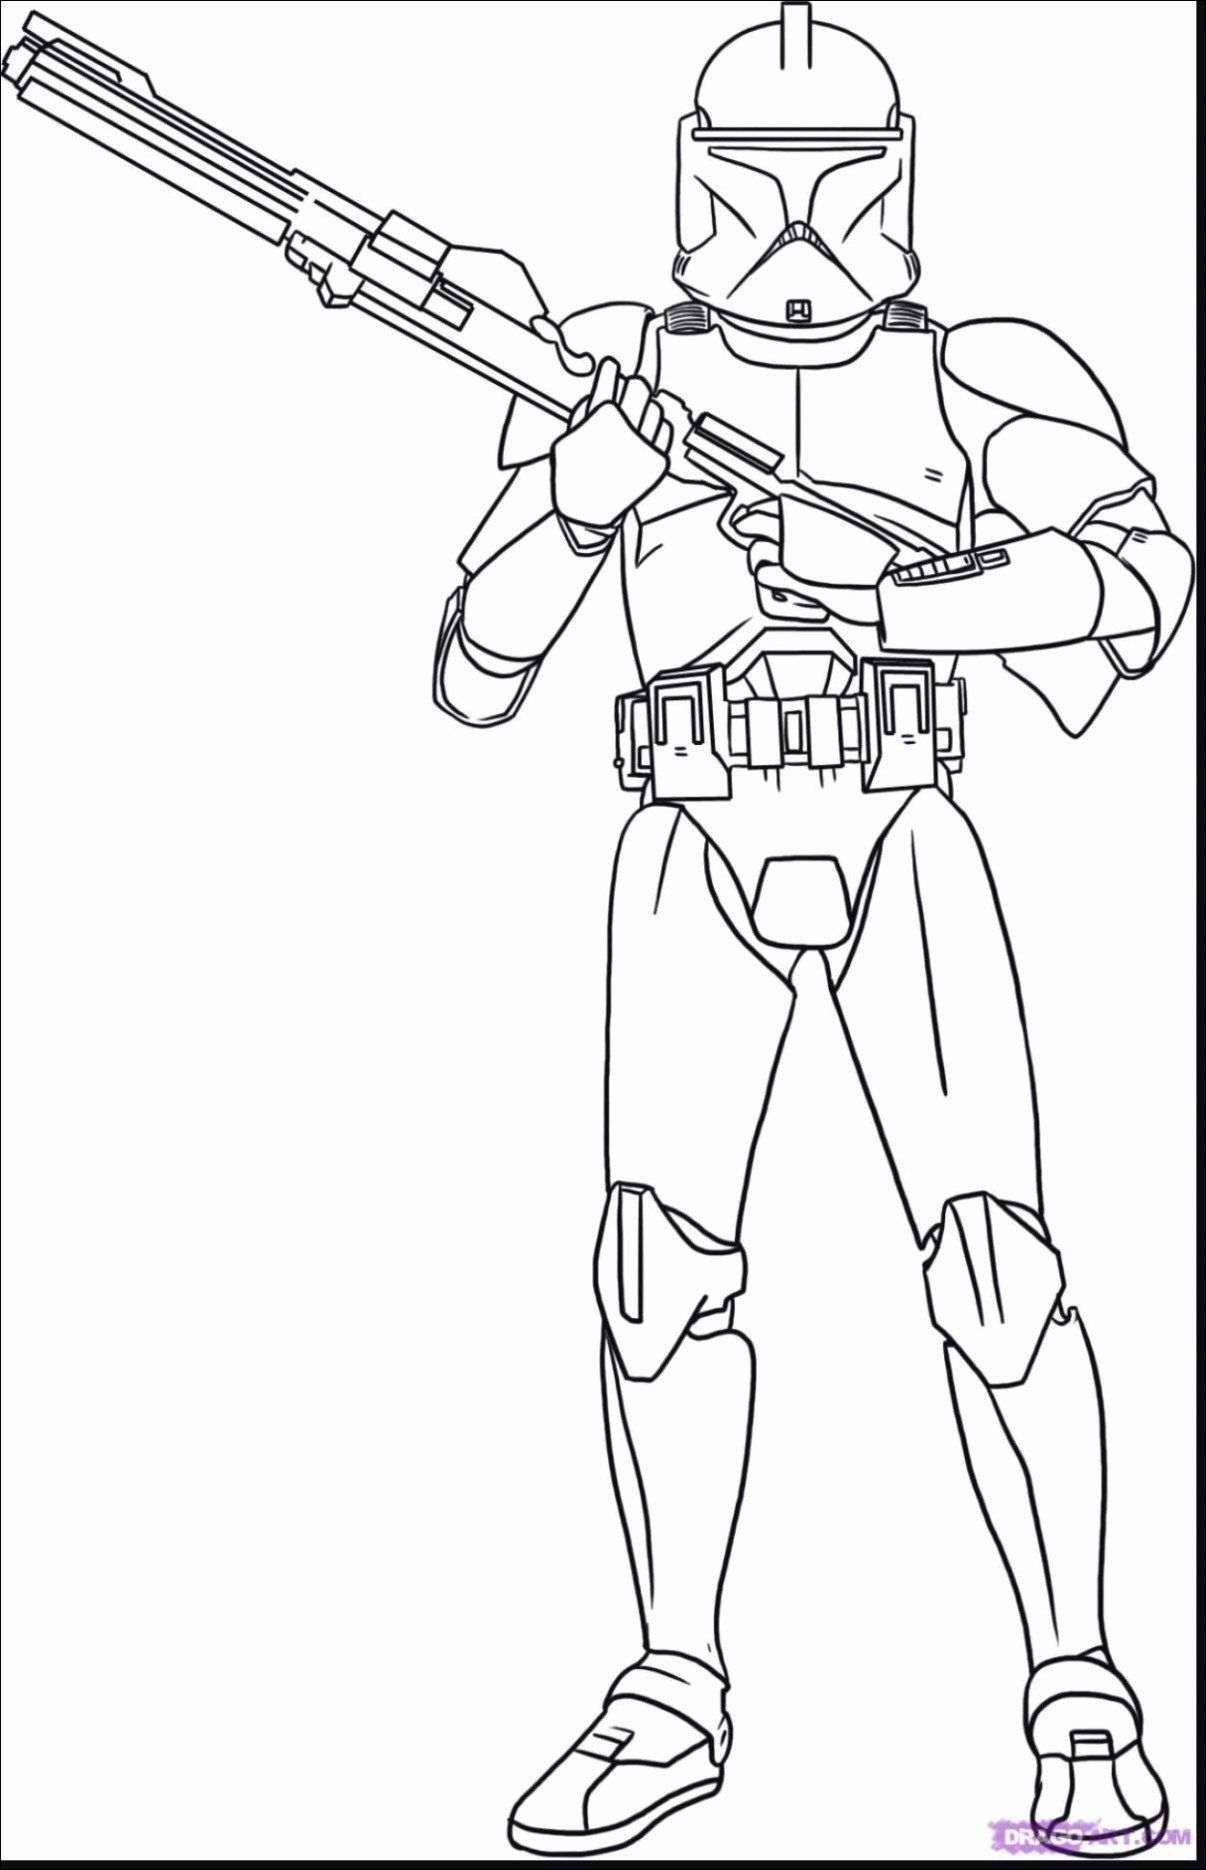 Star Wars Battle Coloring Pages In 2020 Star Wars Drawings Star